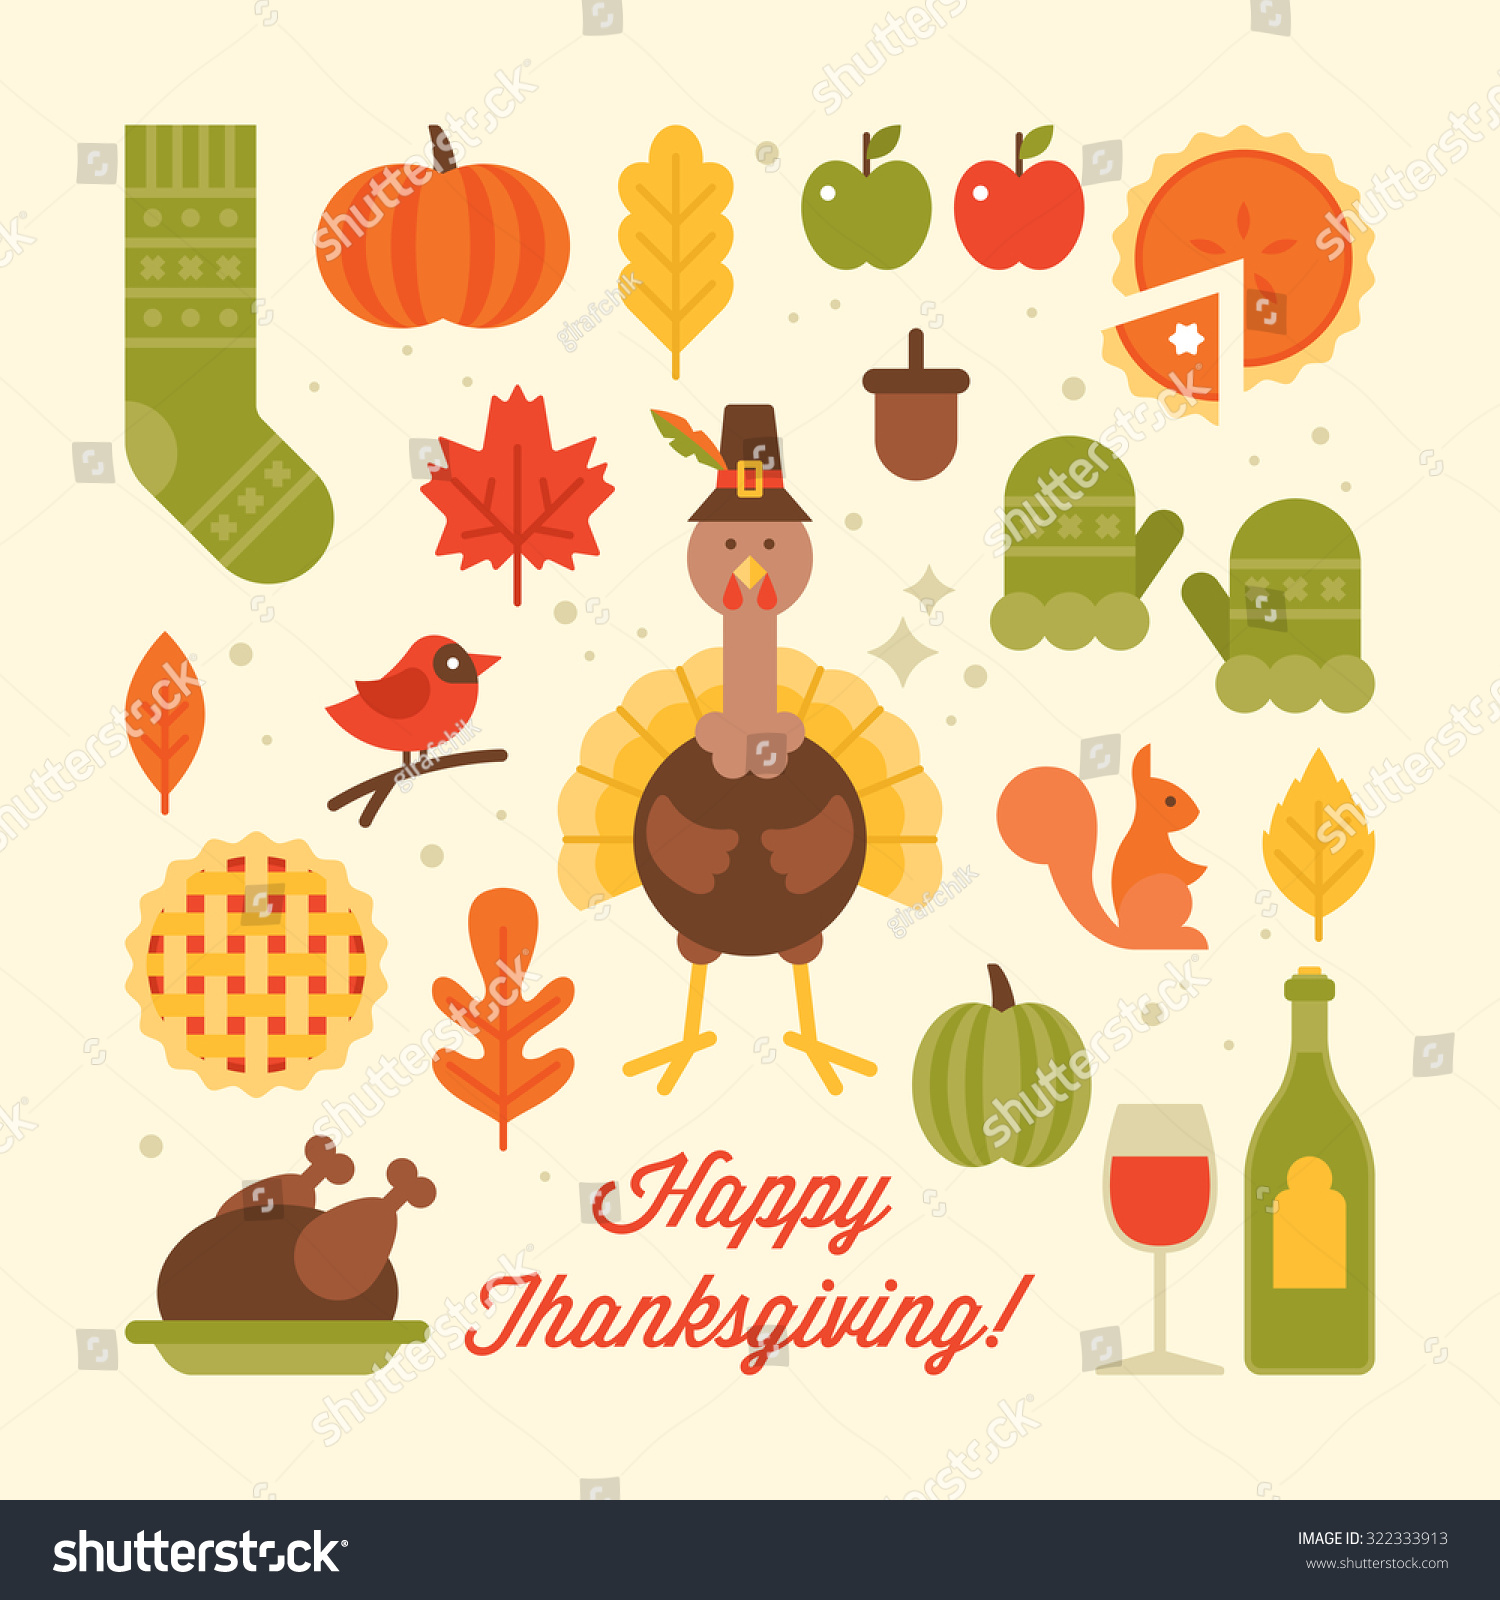 Thanksgiving holiday flat stylish icons Vector illustration